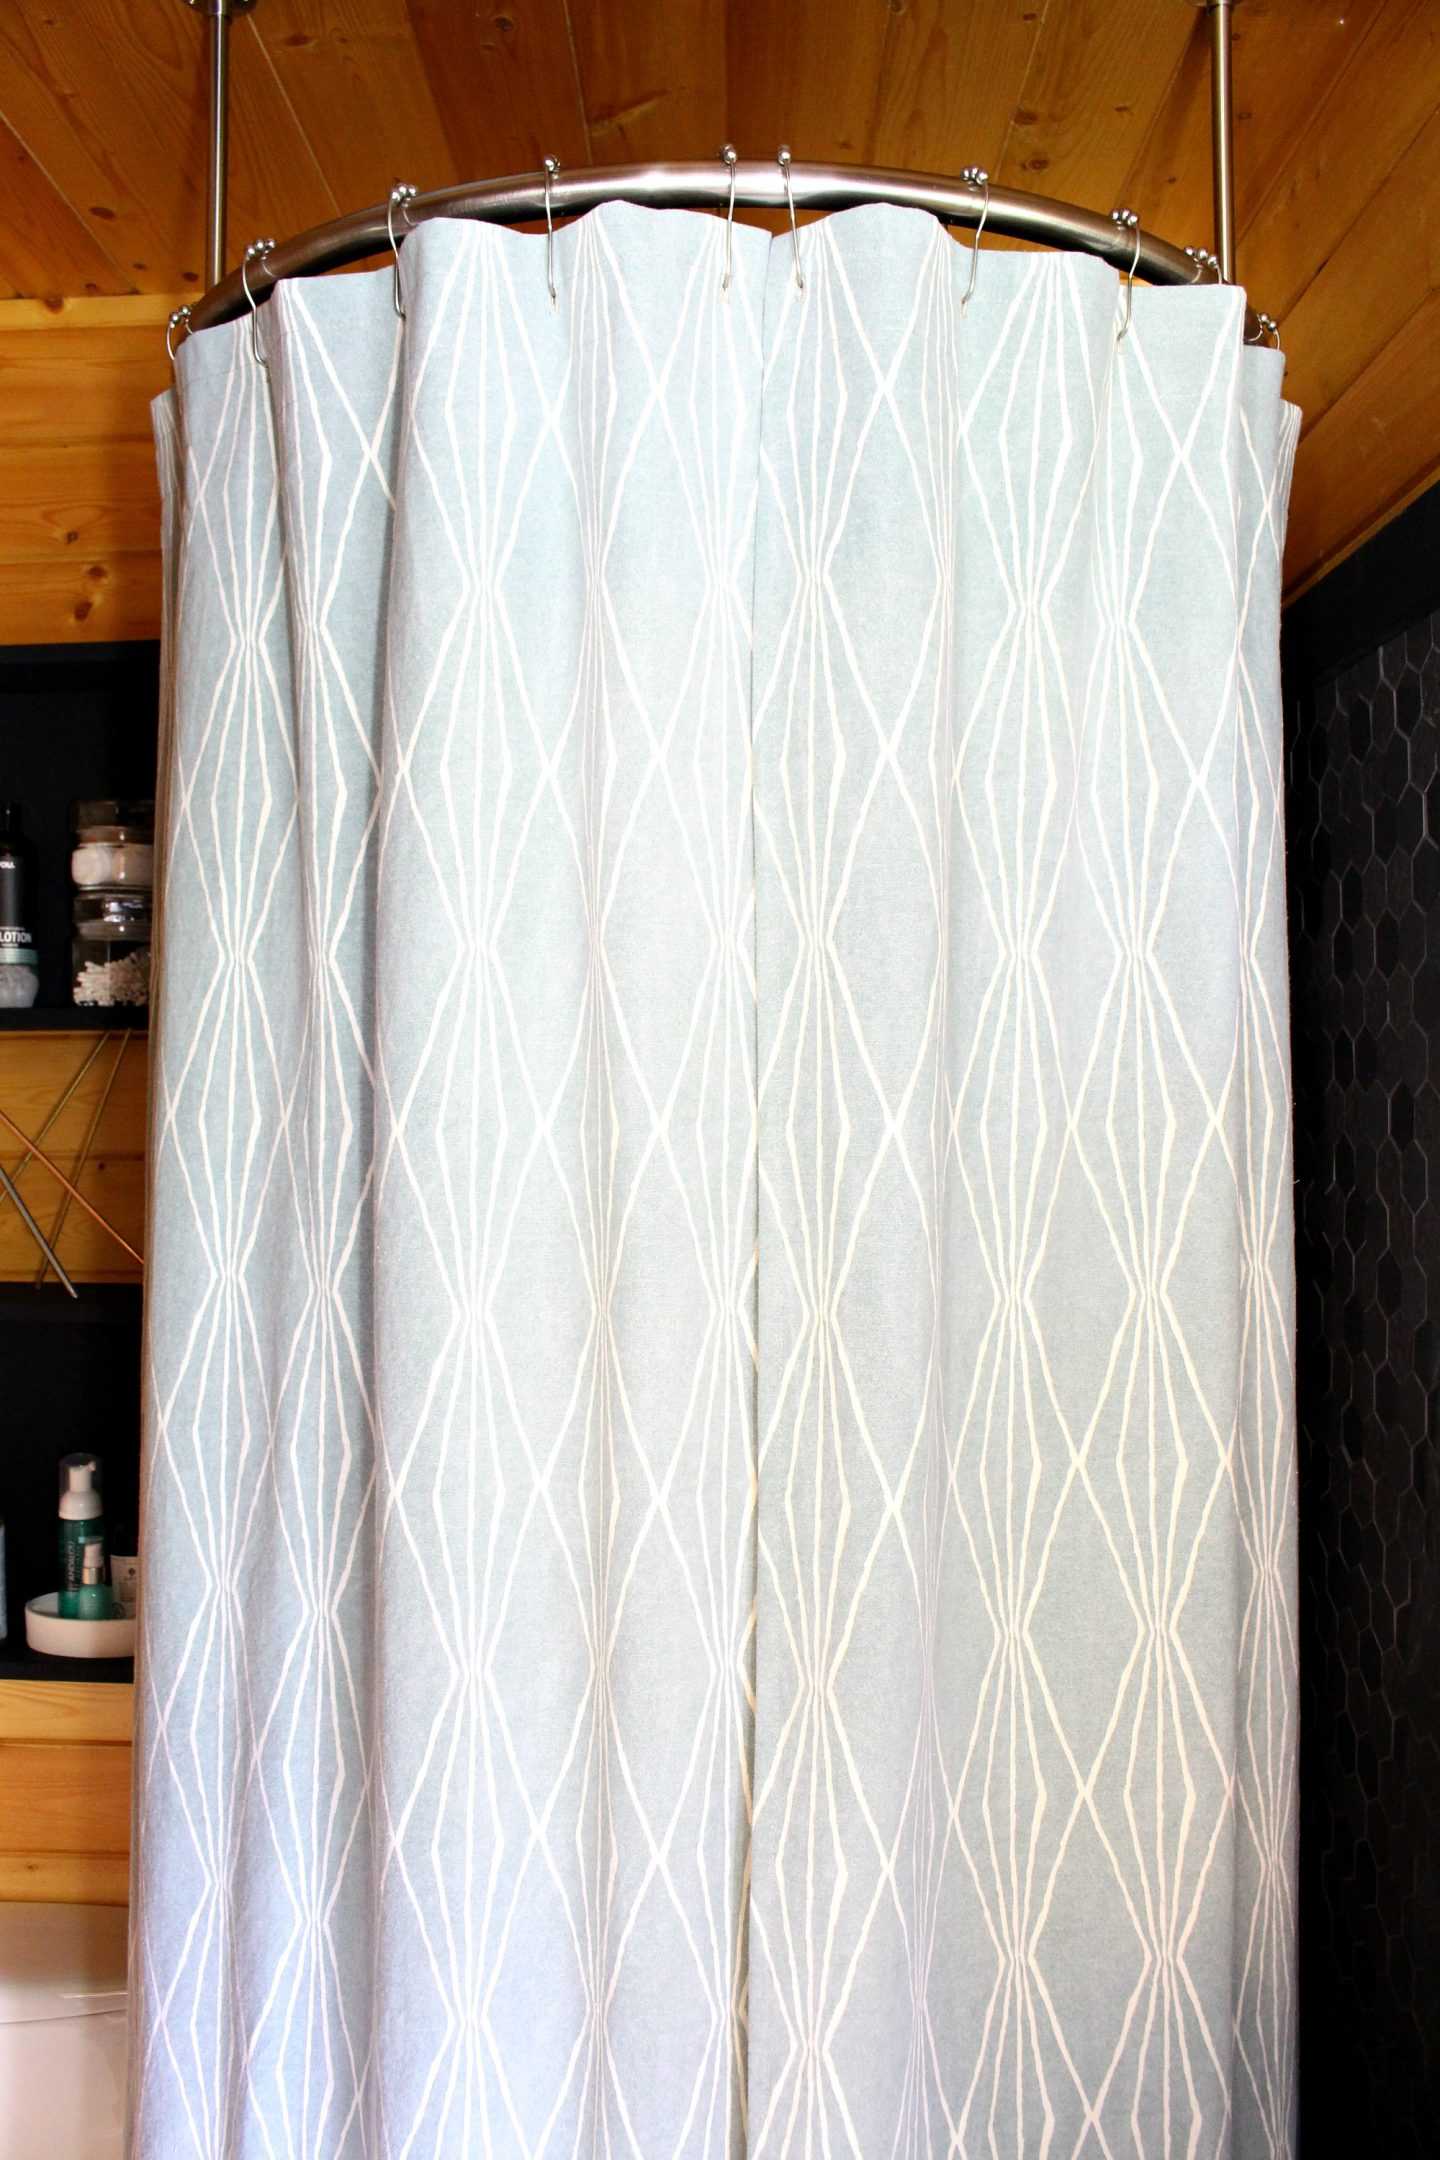 How To Sew A Shower Curtain With Lining Dans Le Lakehouse